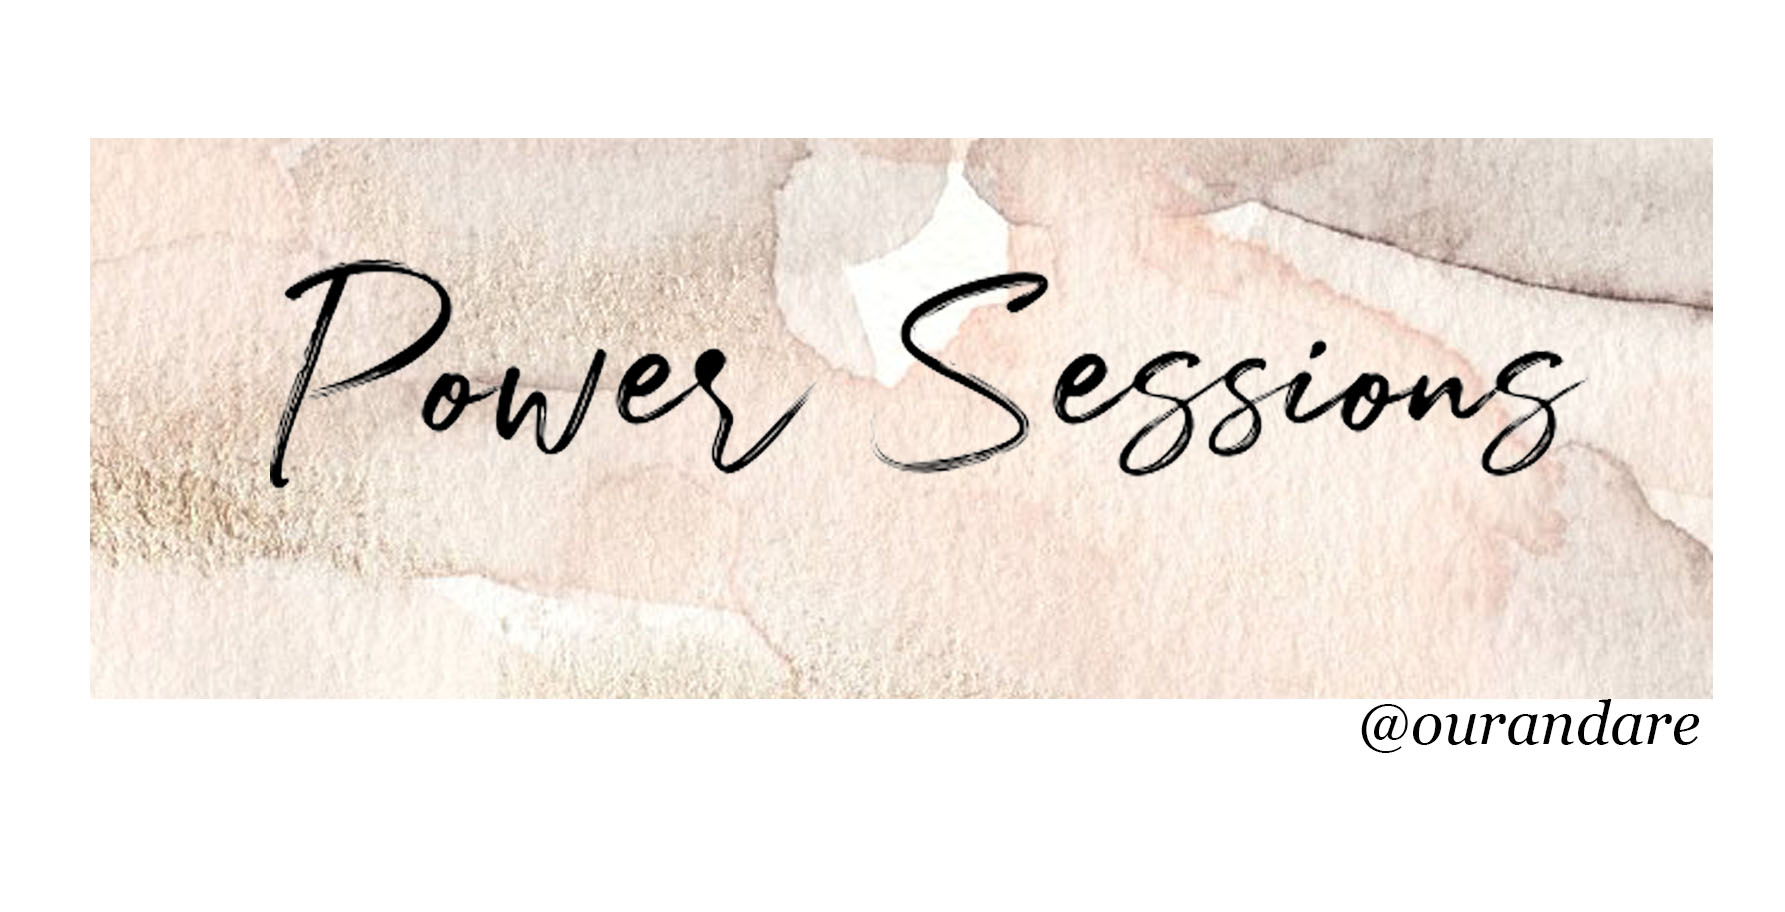 power sessions cropped